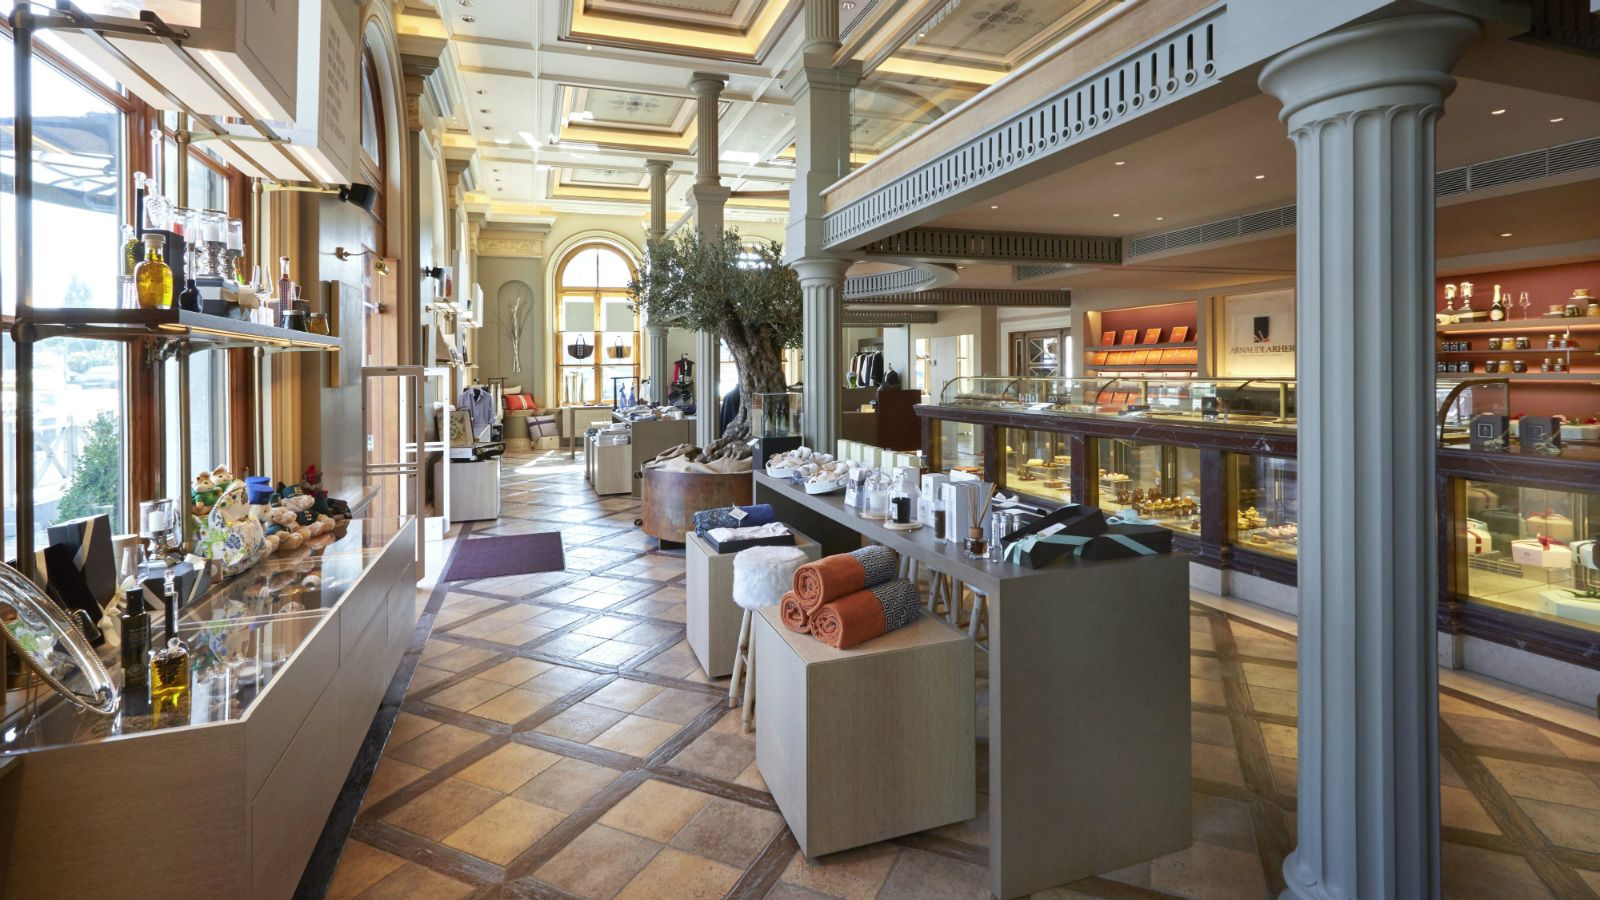 GB-Corner-Gifts-Flavors-concept-store-shot-showing-Zeus-and-Dione-section-at-Hotel-Grande-Bretagne-Athens-Greece